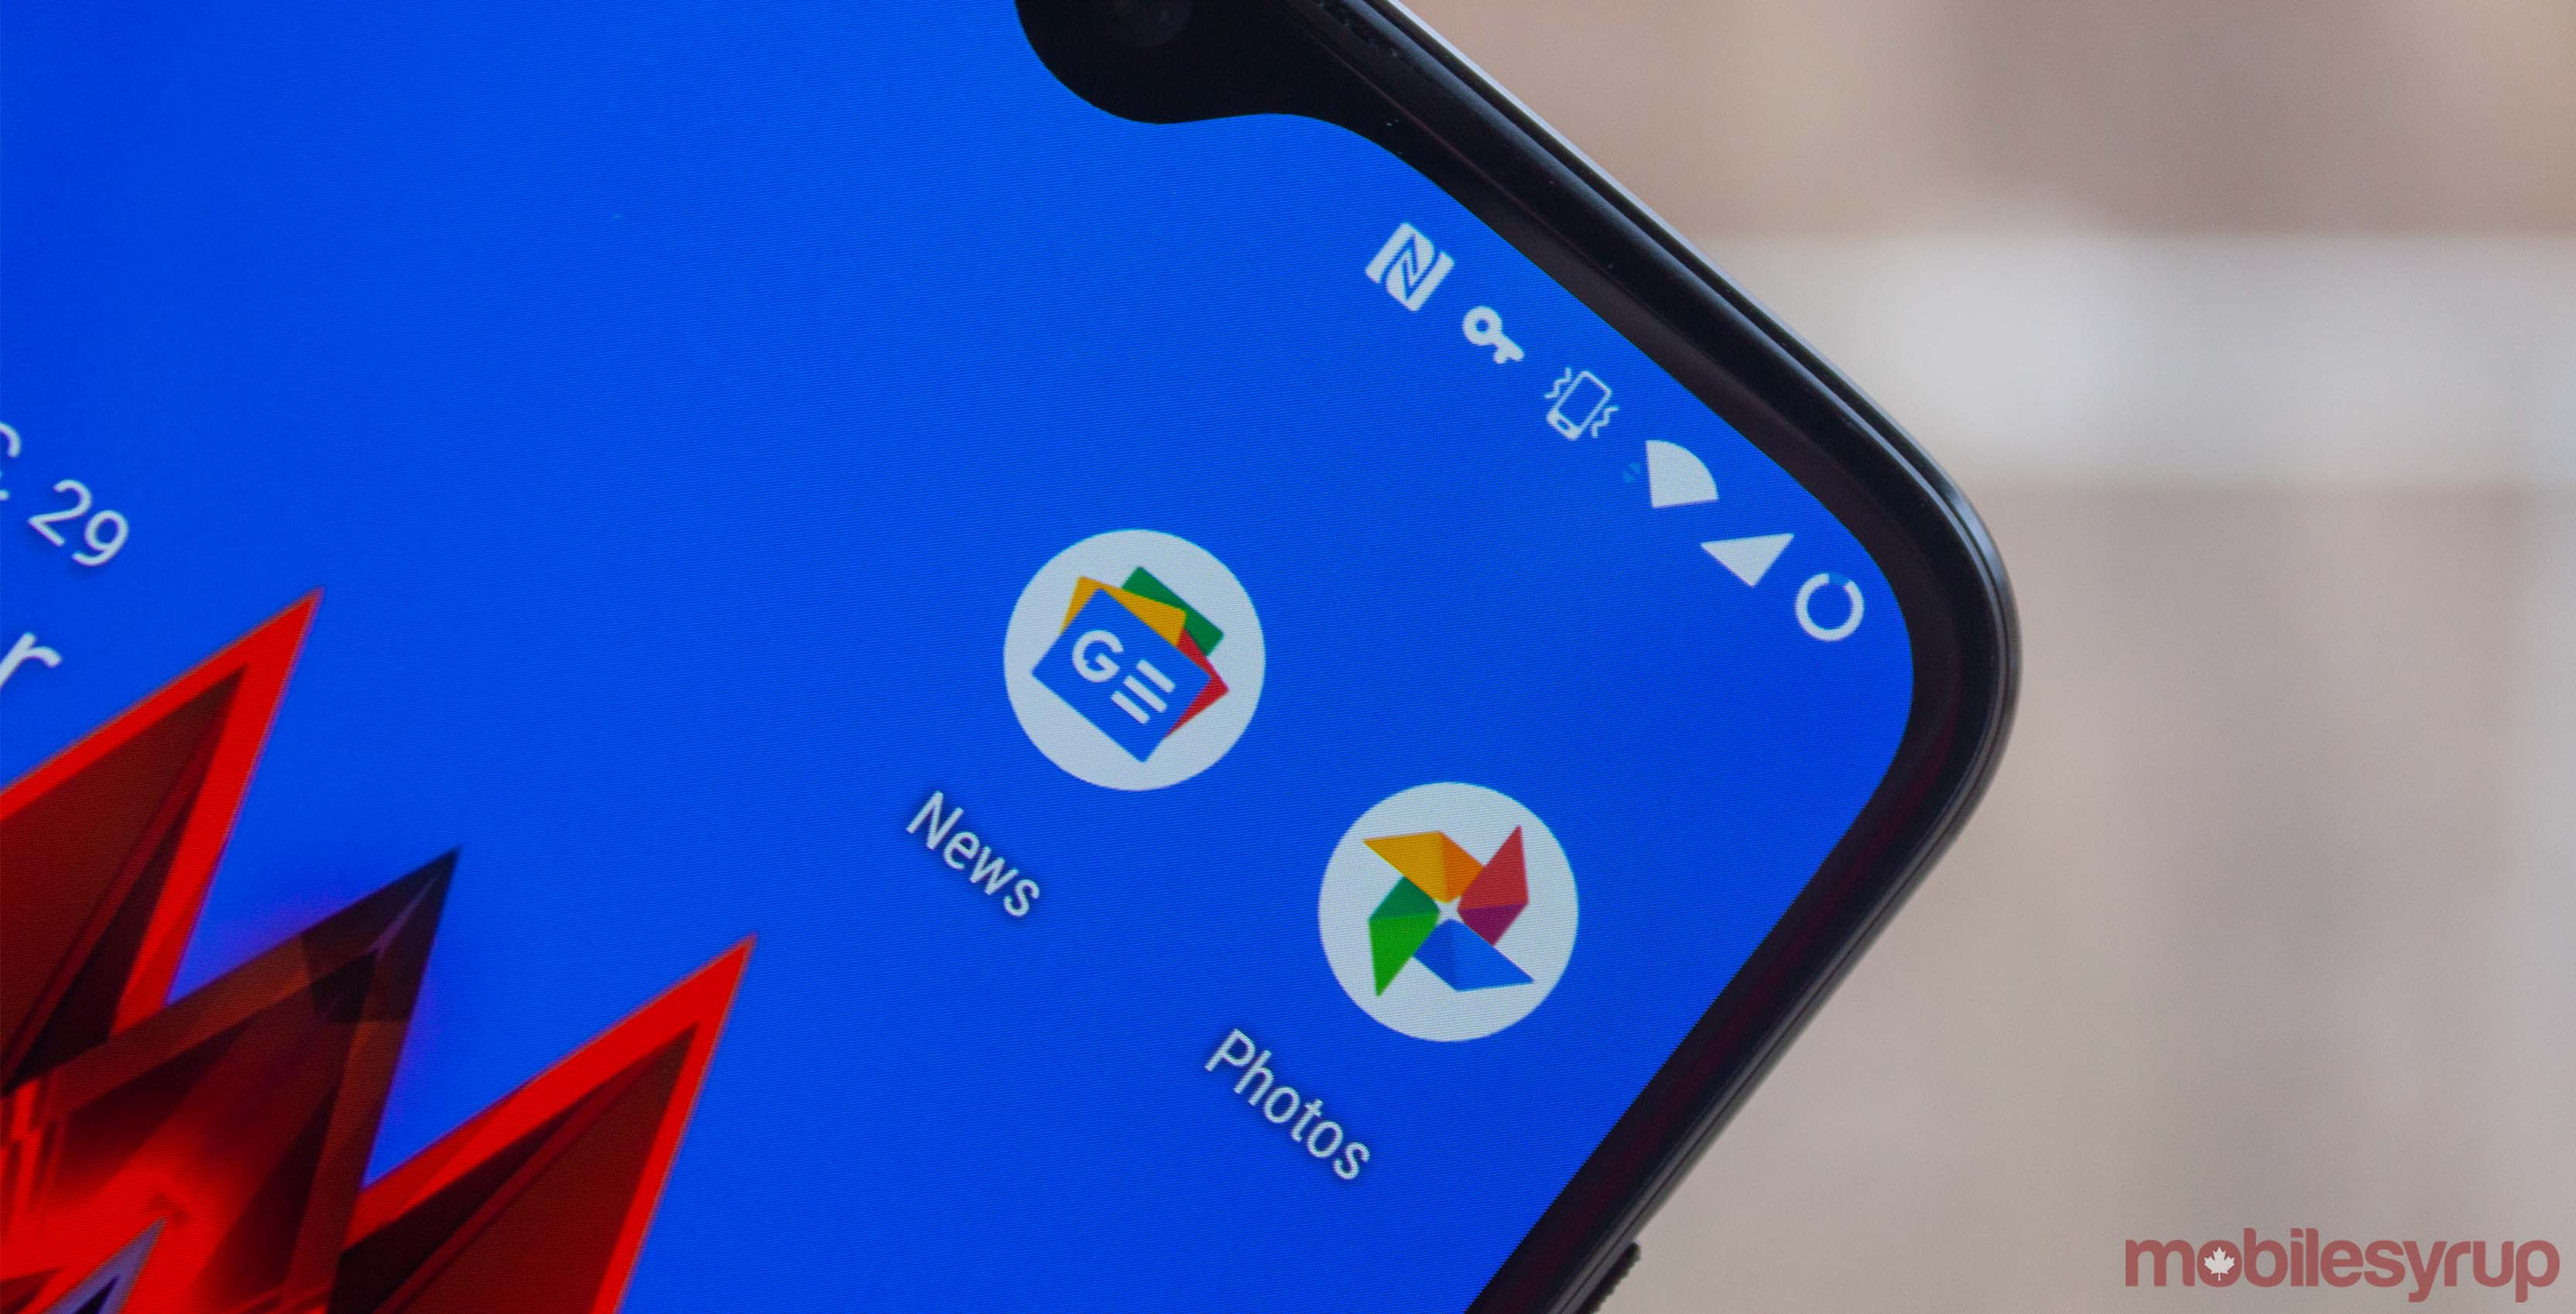 Google Photos and News icons